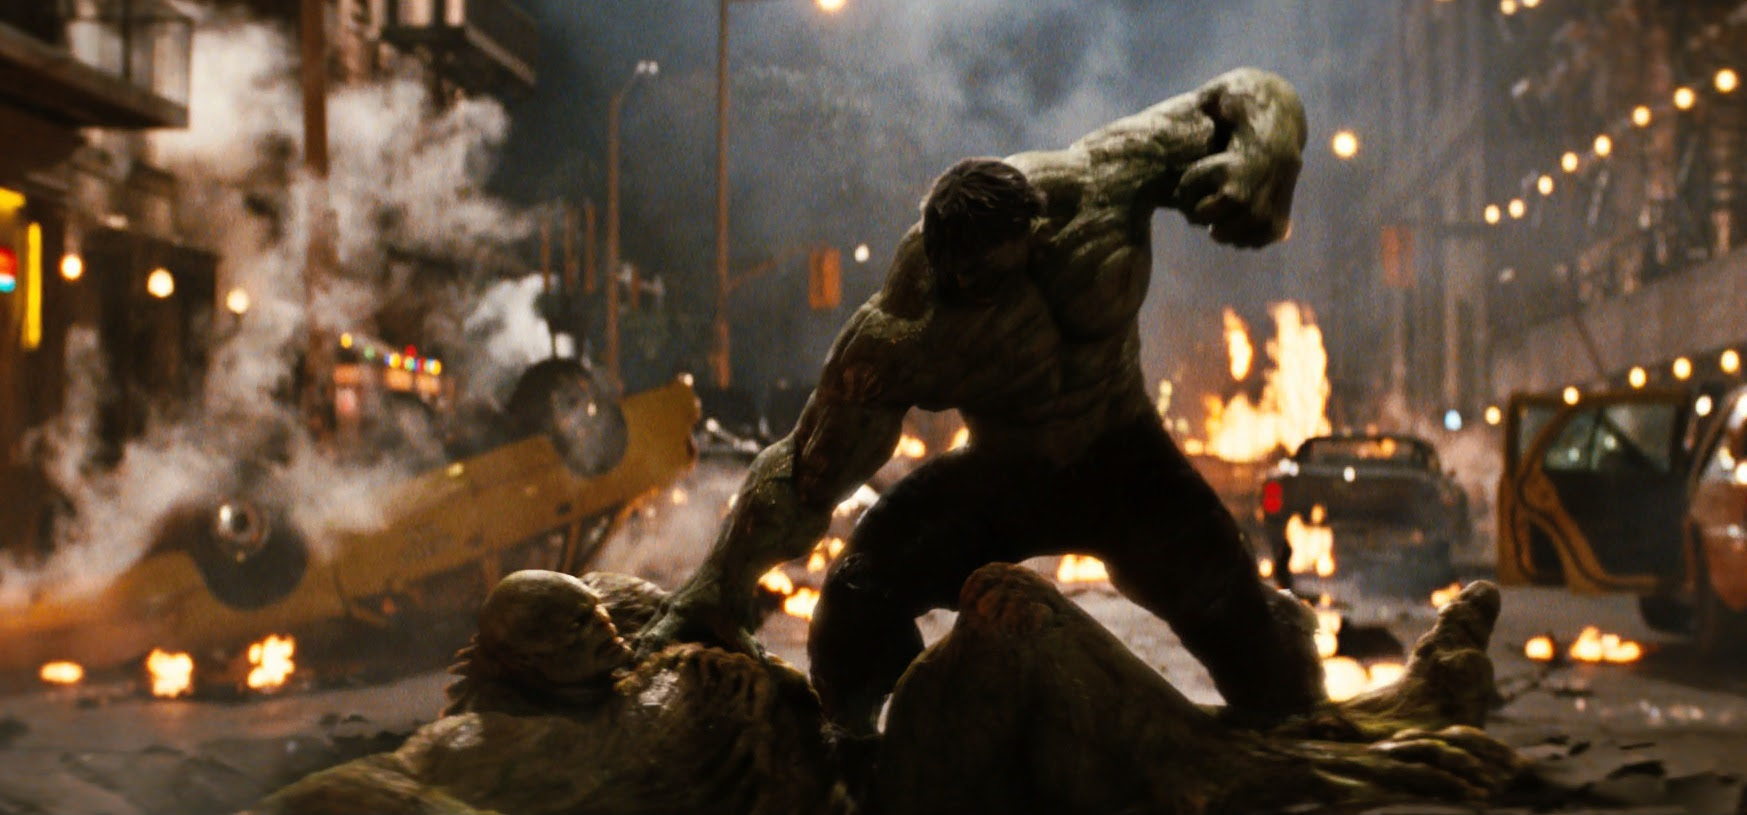 http://vignette1.wikia.nocookie.net/marvelcinematicuniverse/images/c/cc/Hulk_vs_Abomination.jpeg/revision/latest?cb=20120831081159